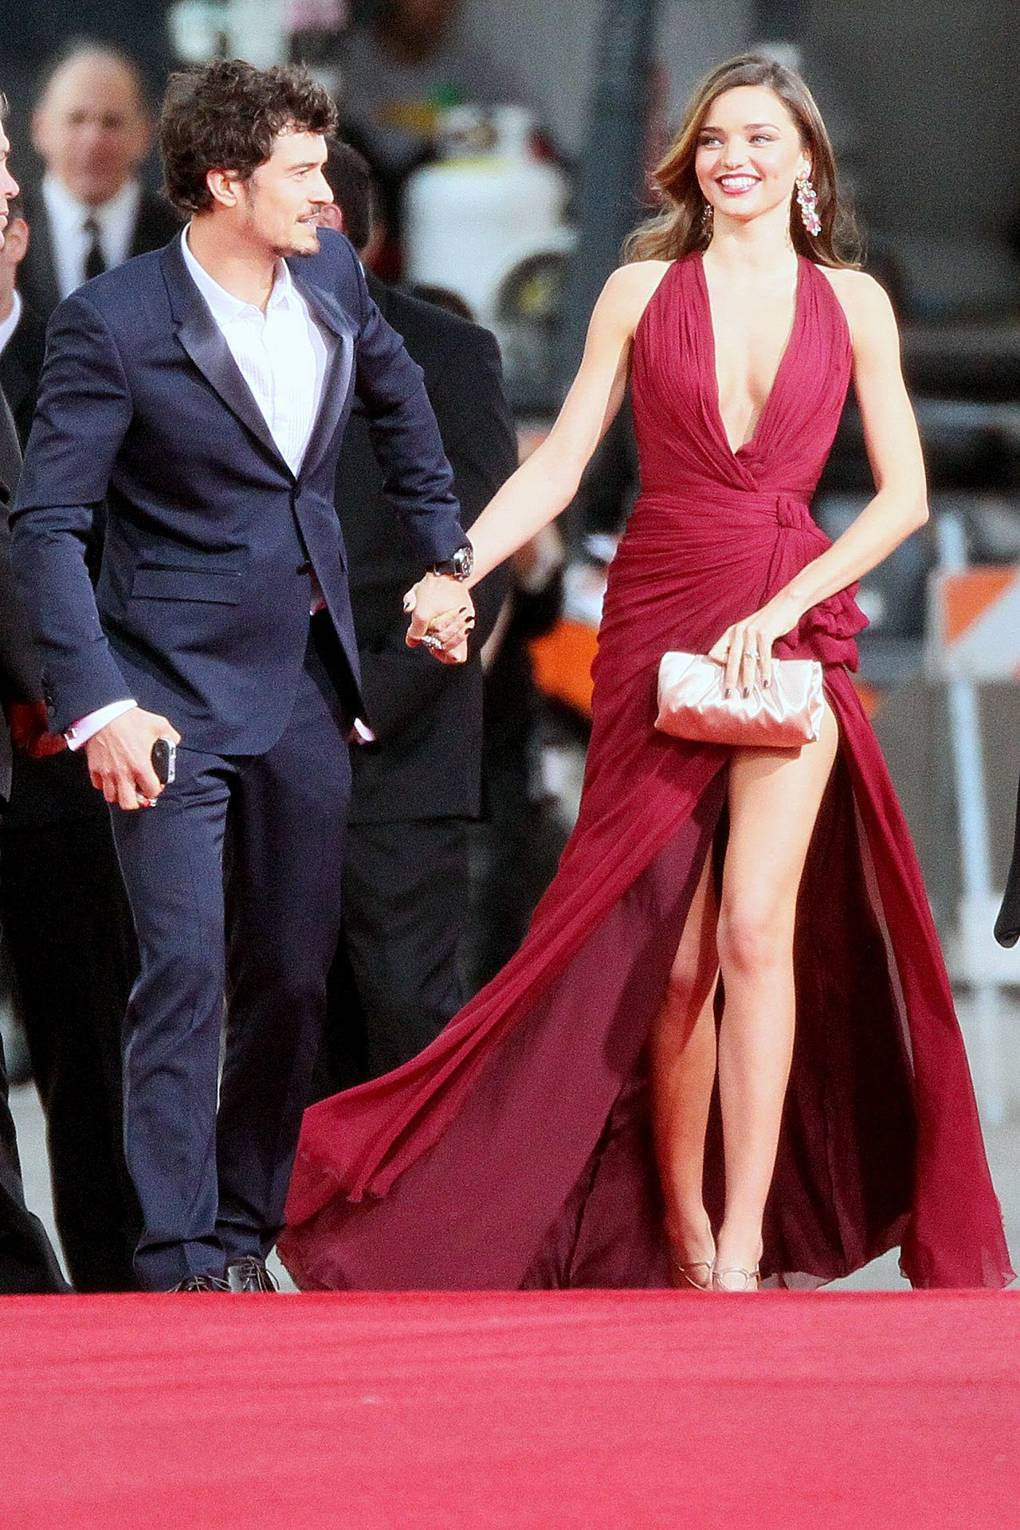 Orlando Bloom Miranda Kerr Relationship In Pictures Glamourcom